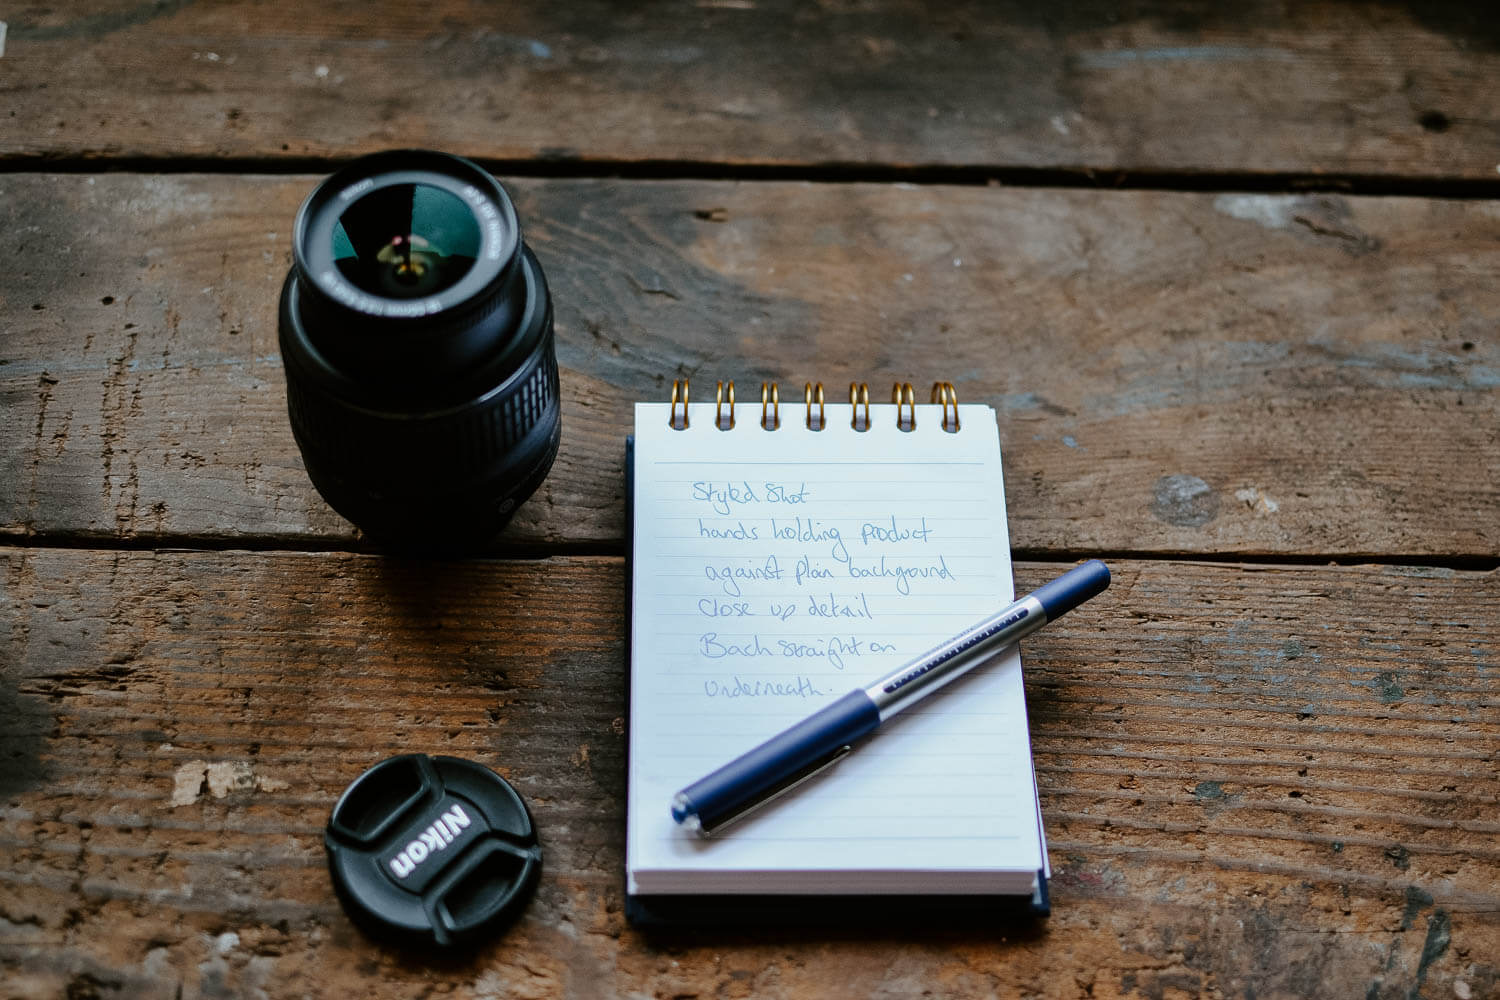 Camera lens and lens cap on rustic wooden table